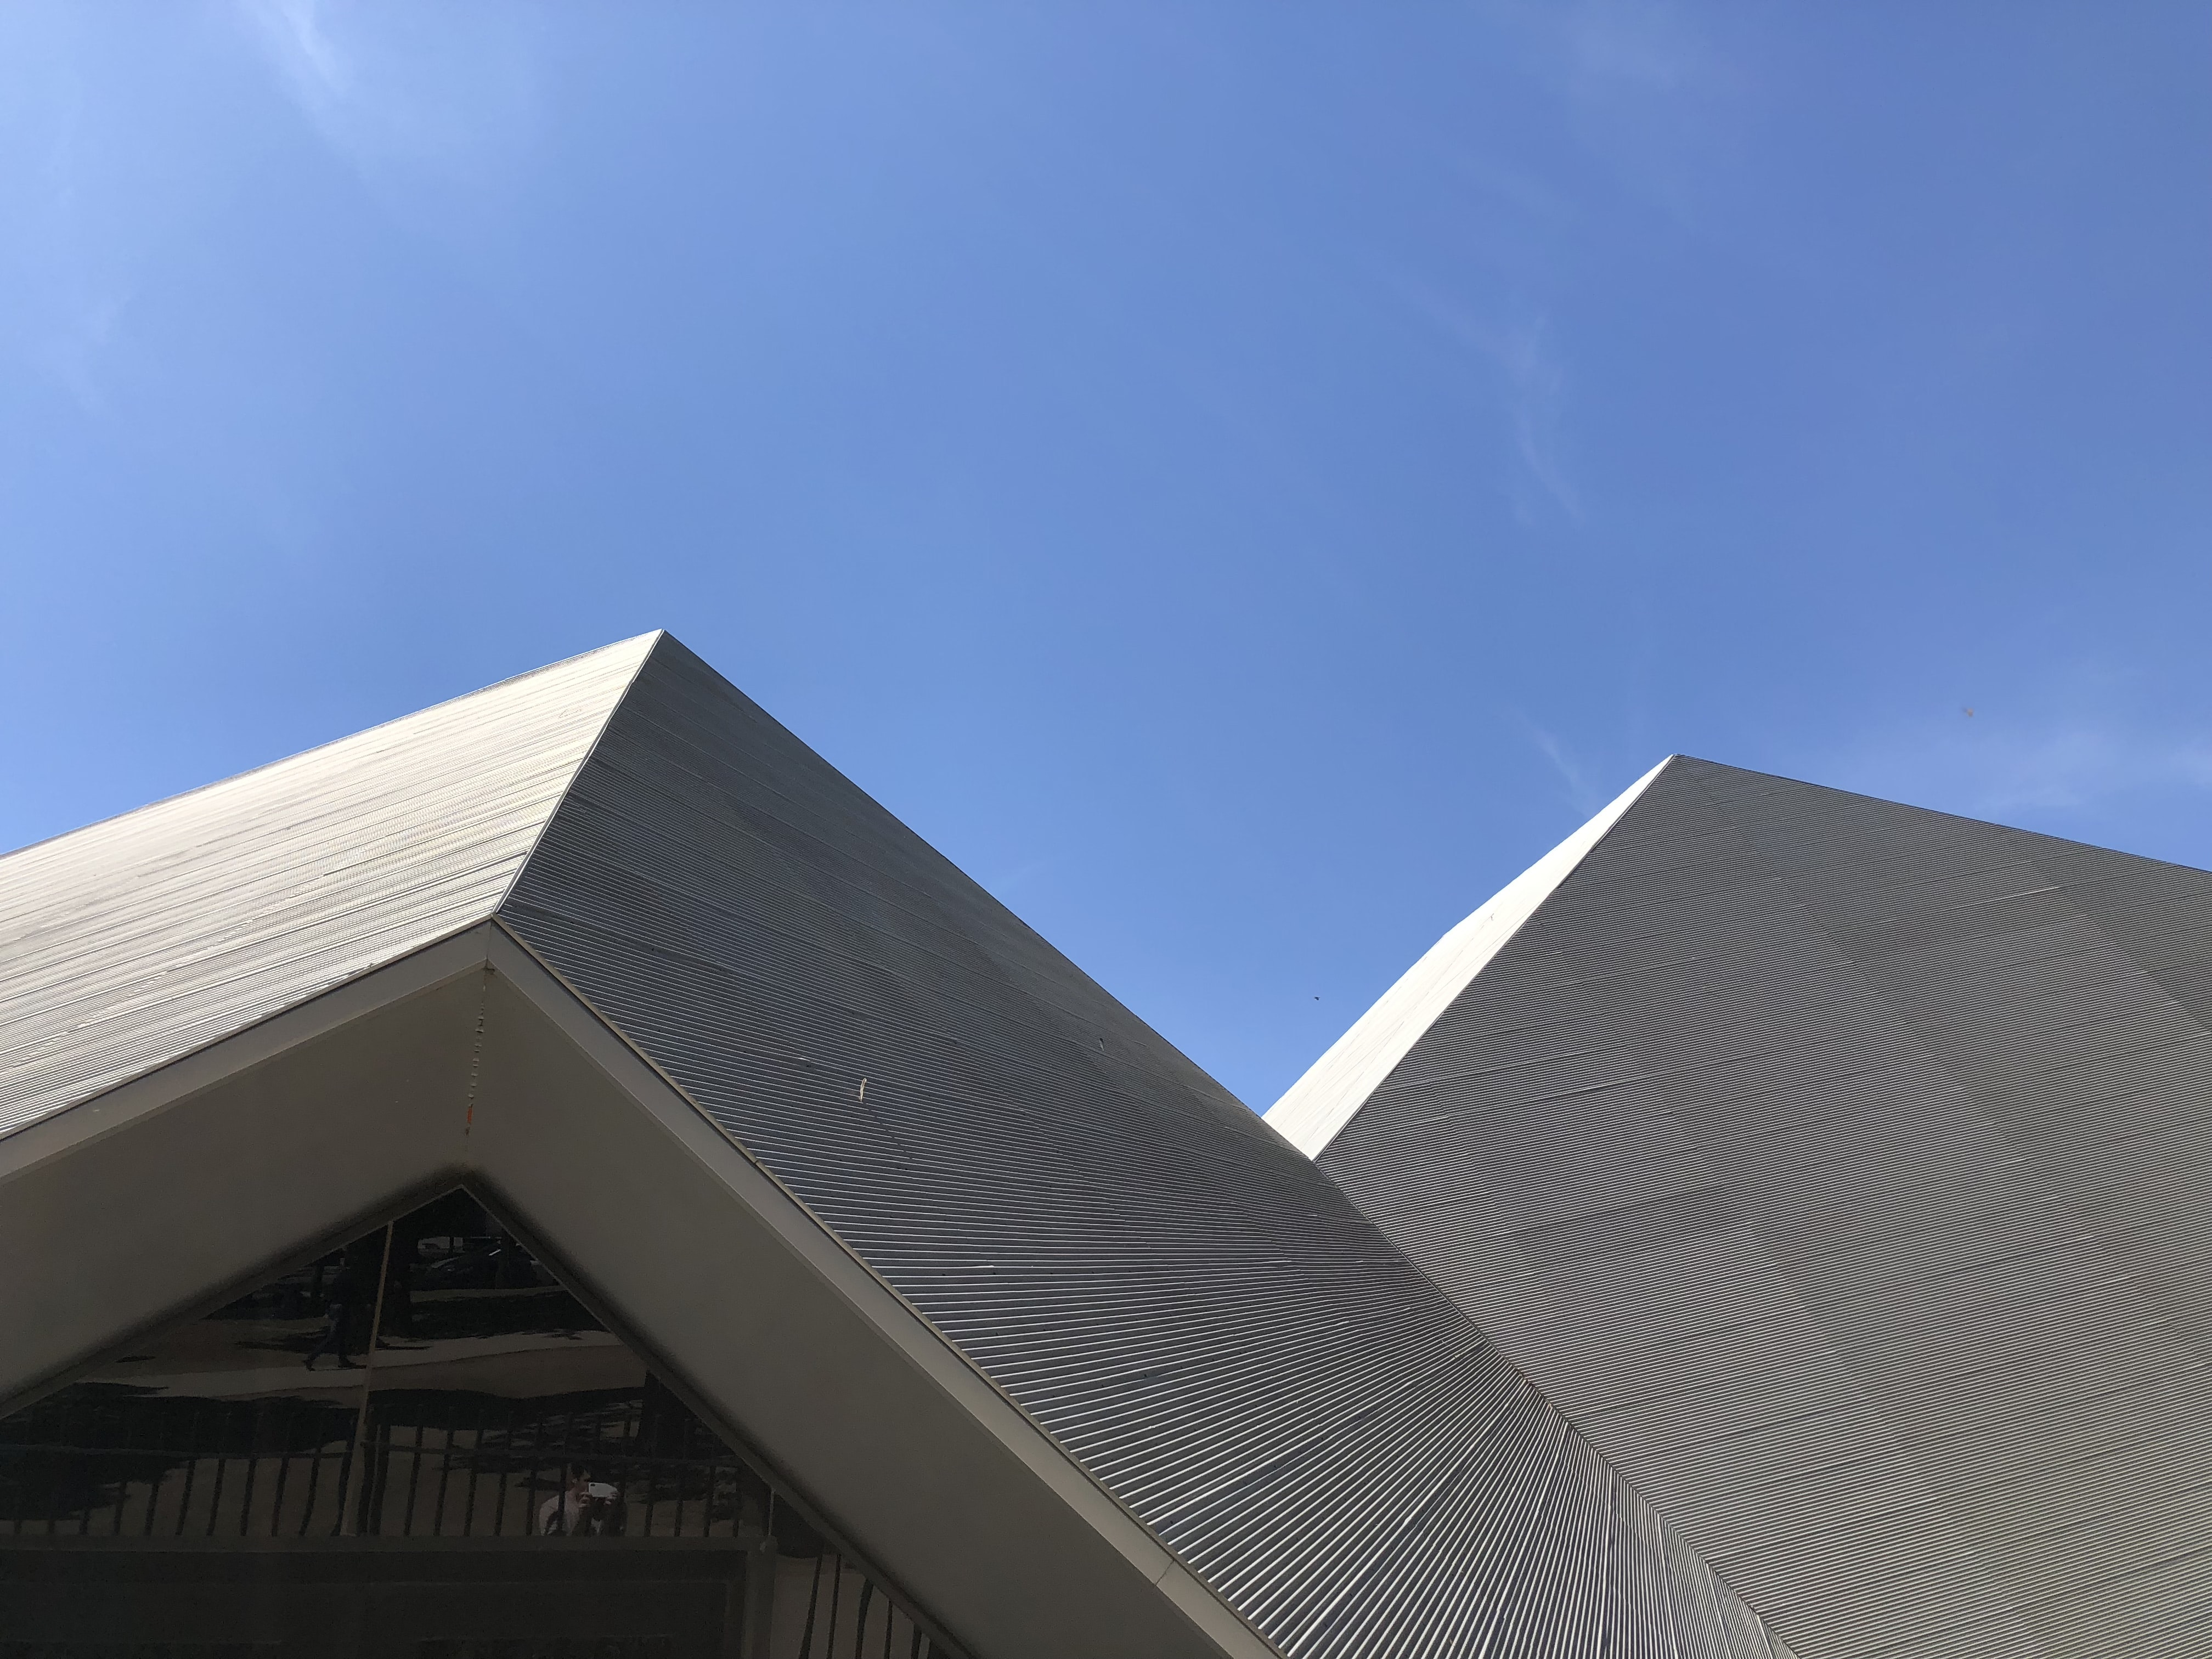 low angle photography of white building structure